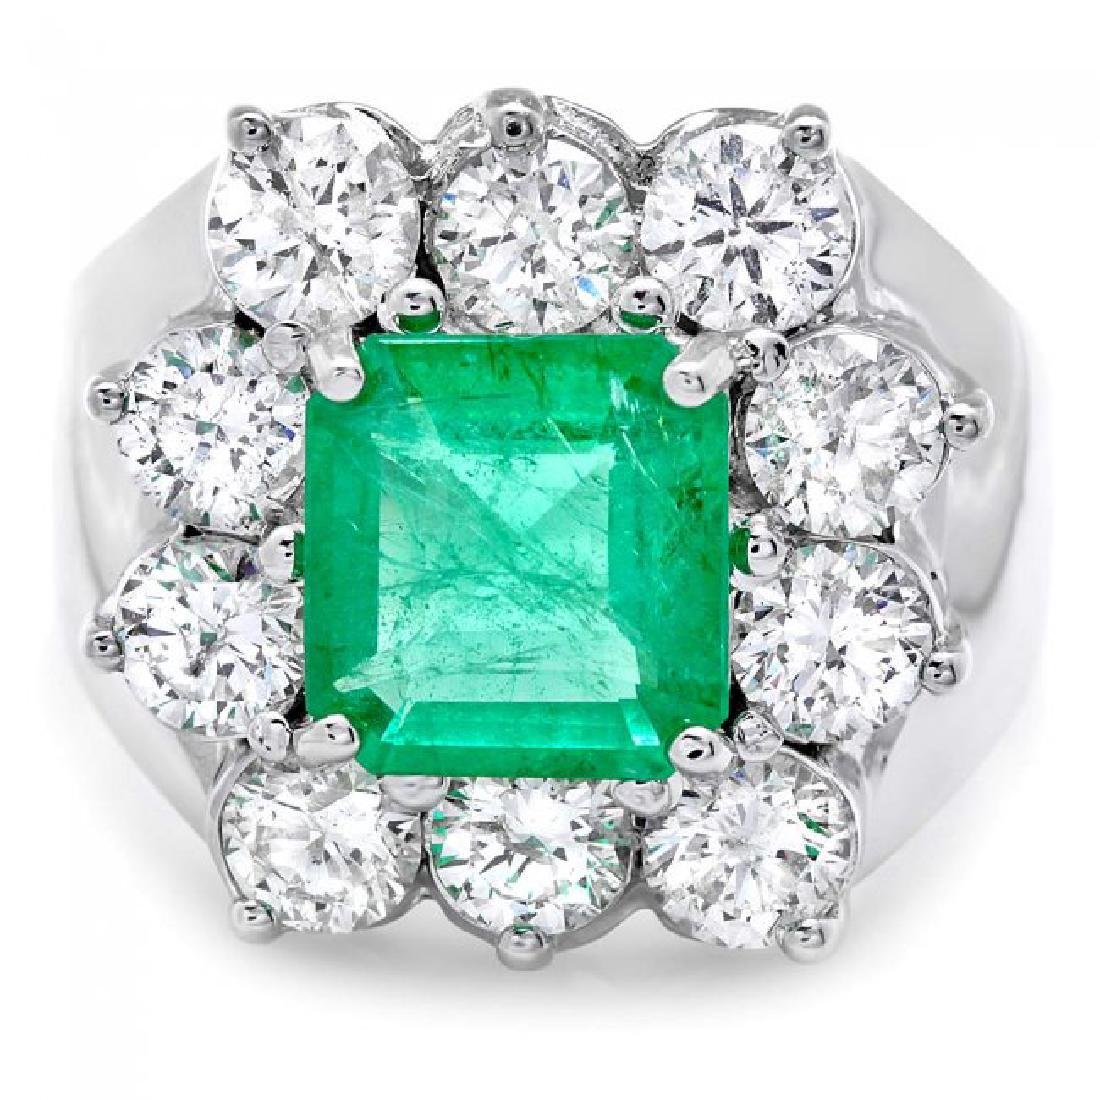 18k White Gold 2.00ct Emerald 2.60ct Diamond Ring - 2